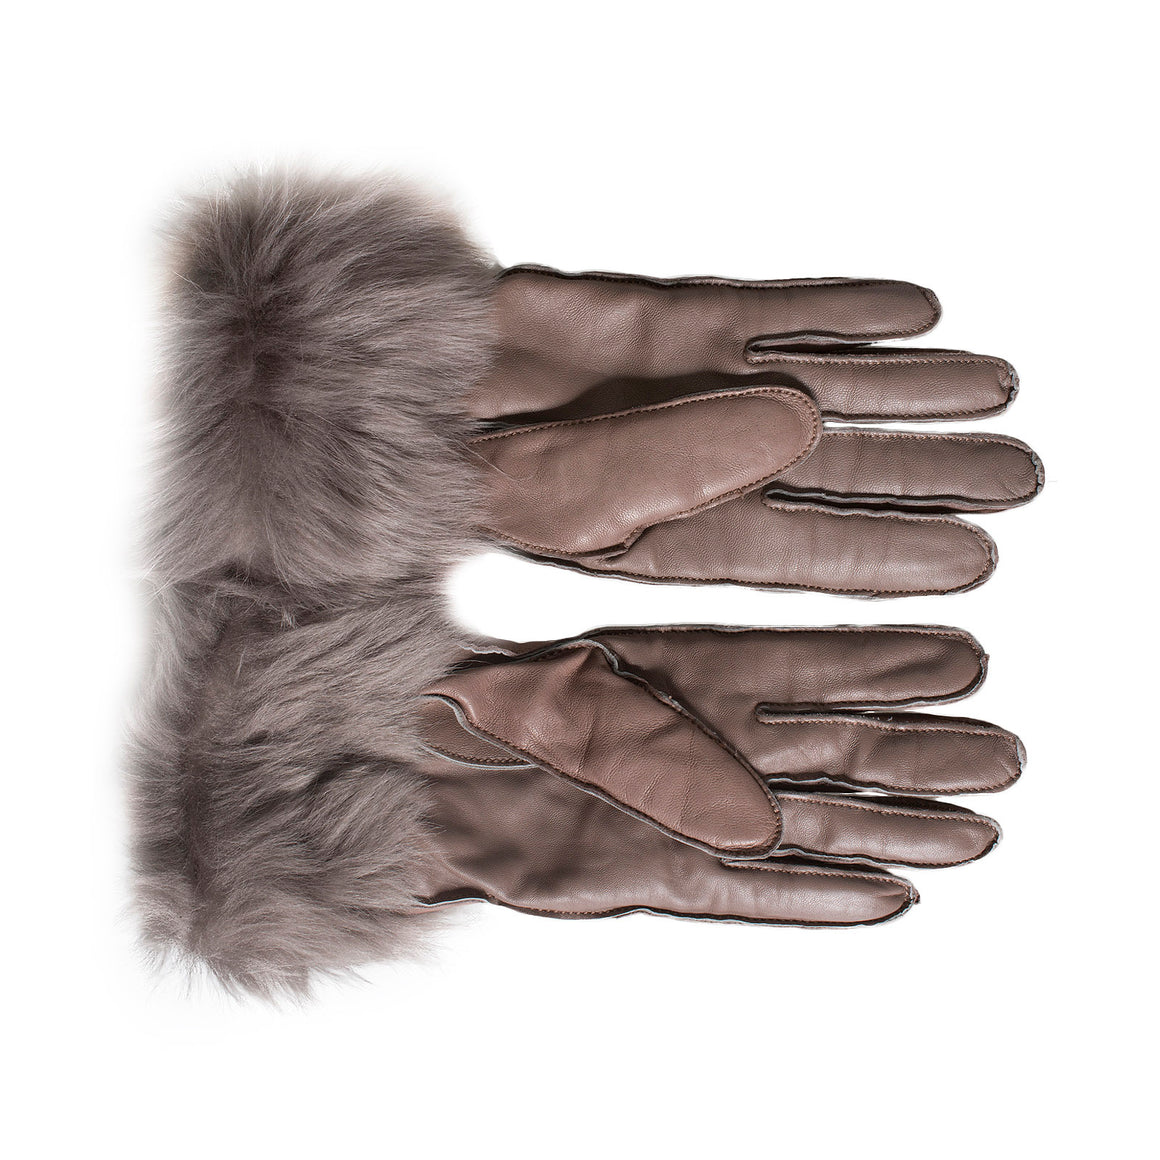 UGG 3 Point Long Toscana Smart Stormy Grey Gloves - Women's